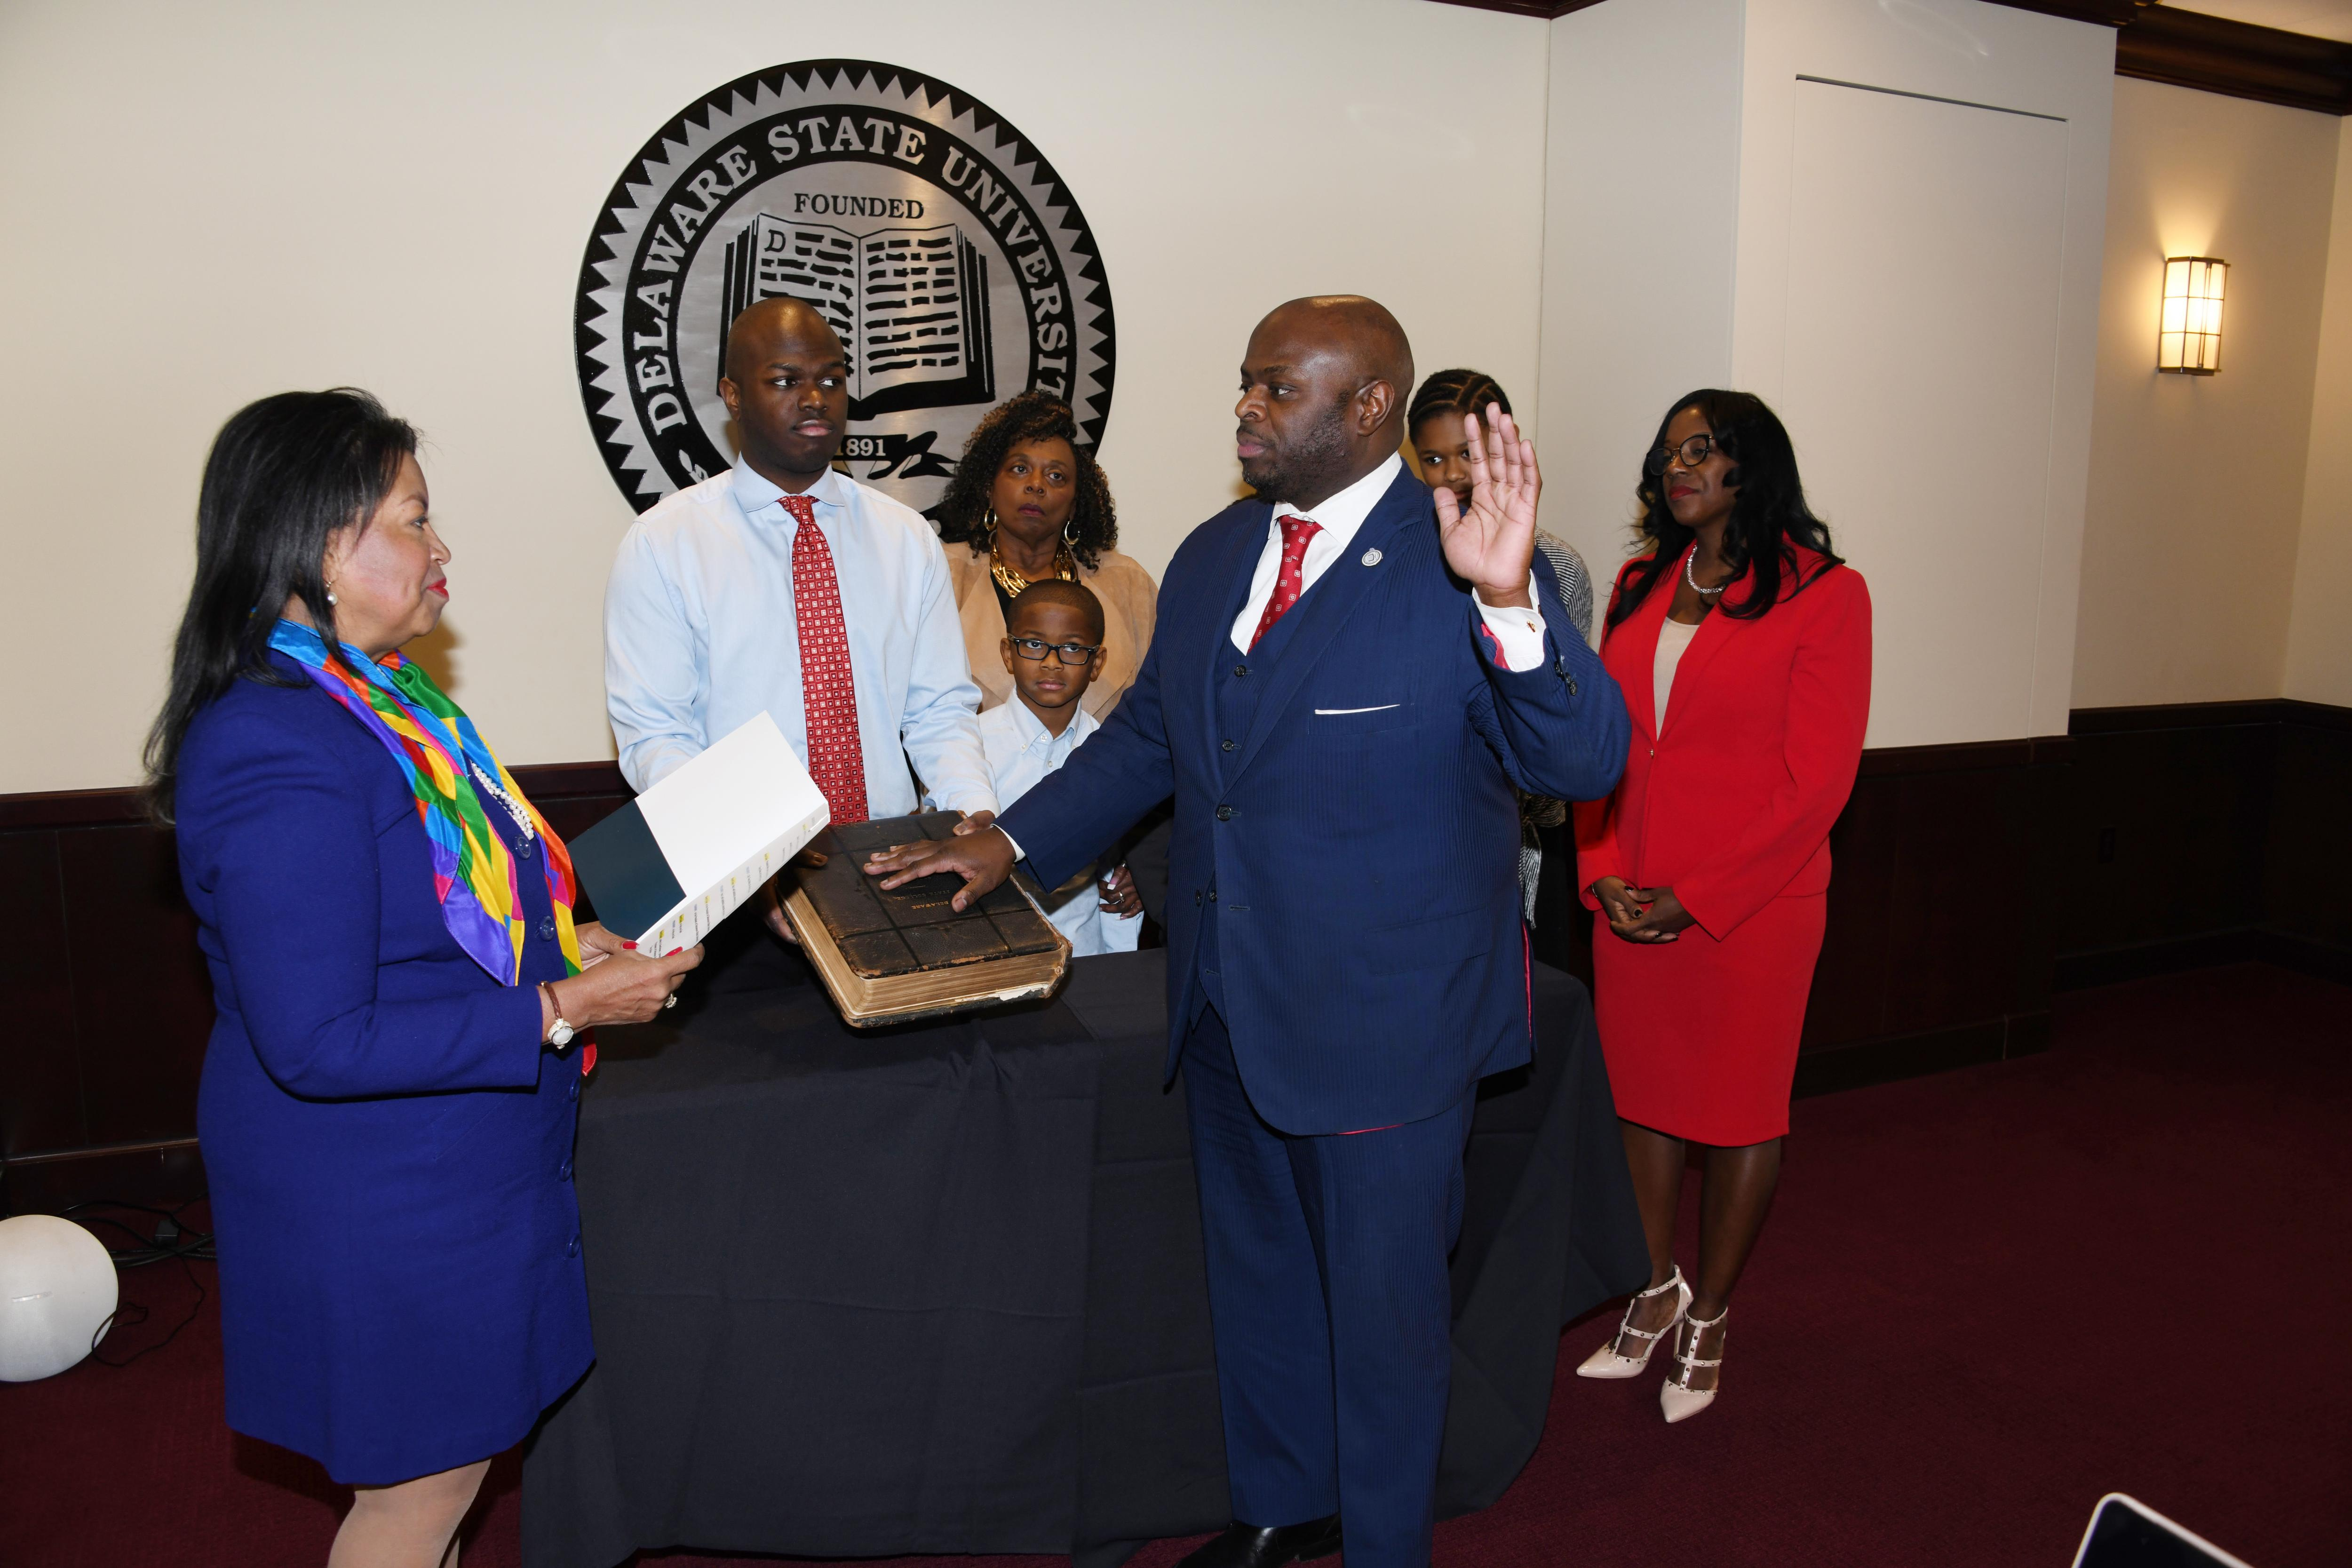 Board of Trustees Chairperson Devona Williams swears in Dr. Tony Allen as the 12th President of Delaware State University during the board Jan. 23 meeting.